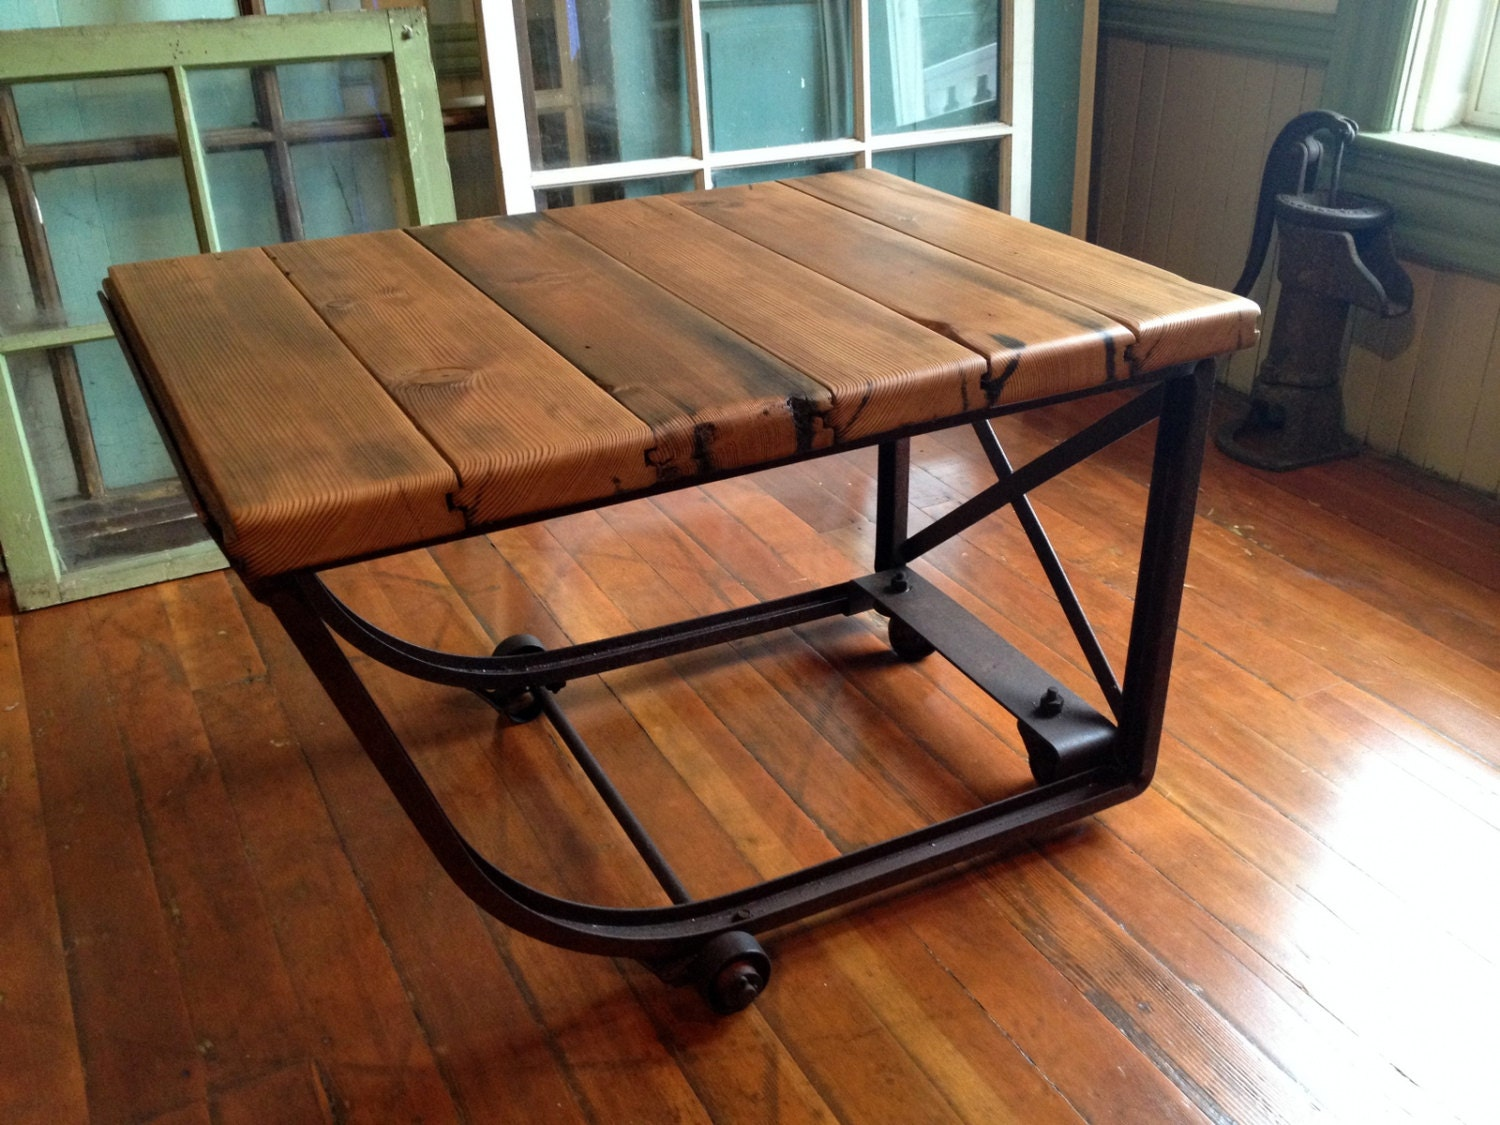 Reclaimed wood industrial coffee table by hammerheadcreations for Reclaimed wood furniture portland oregon